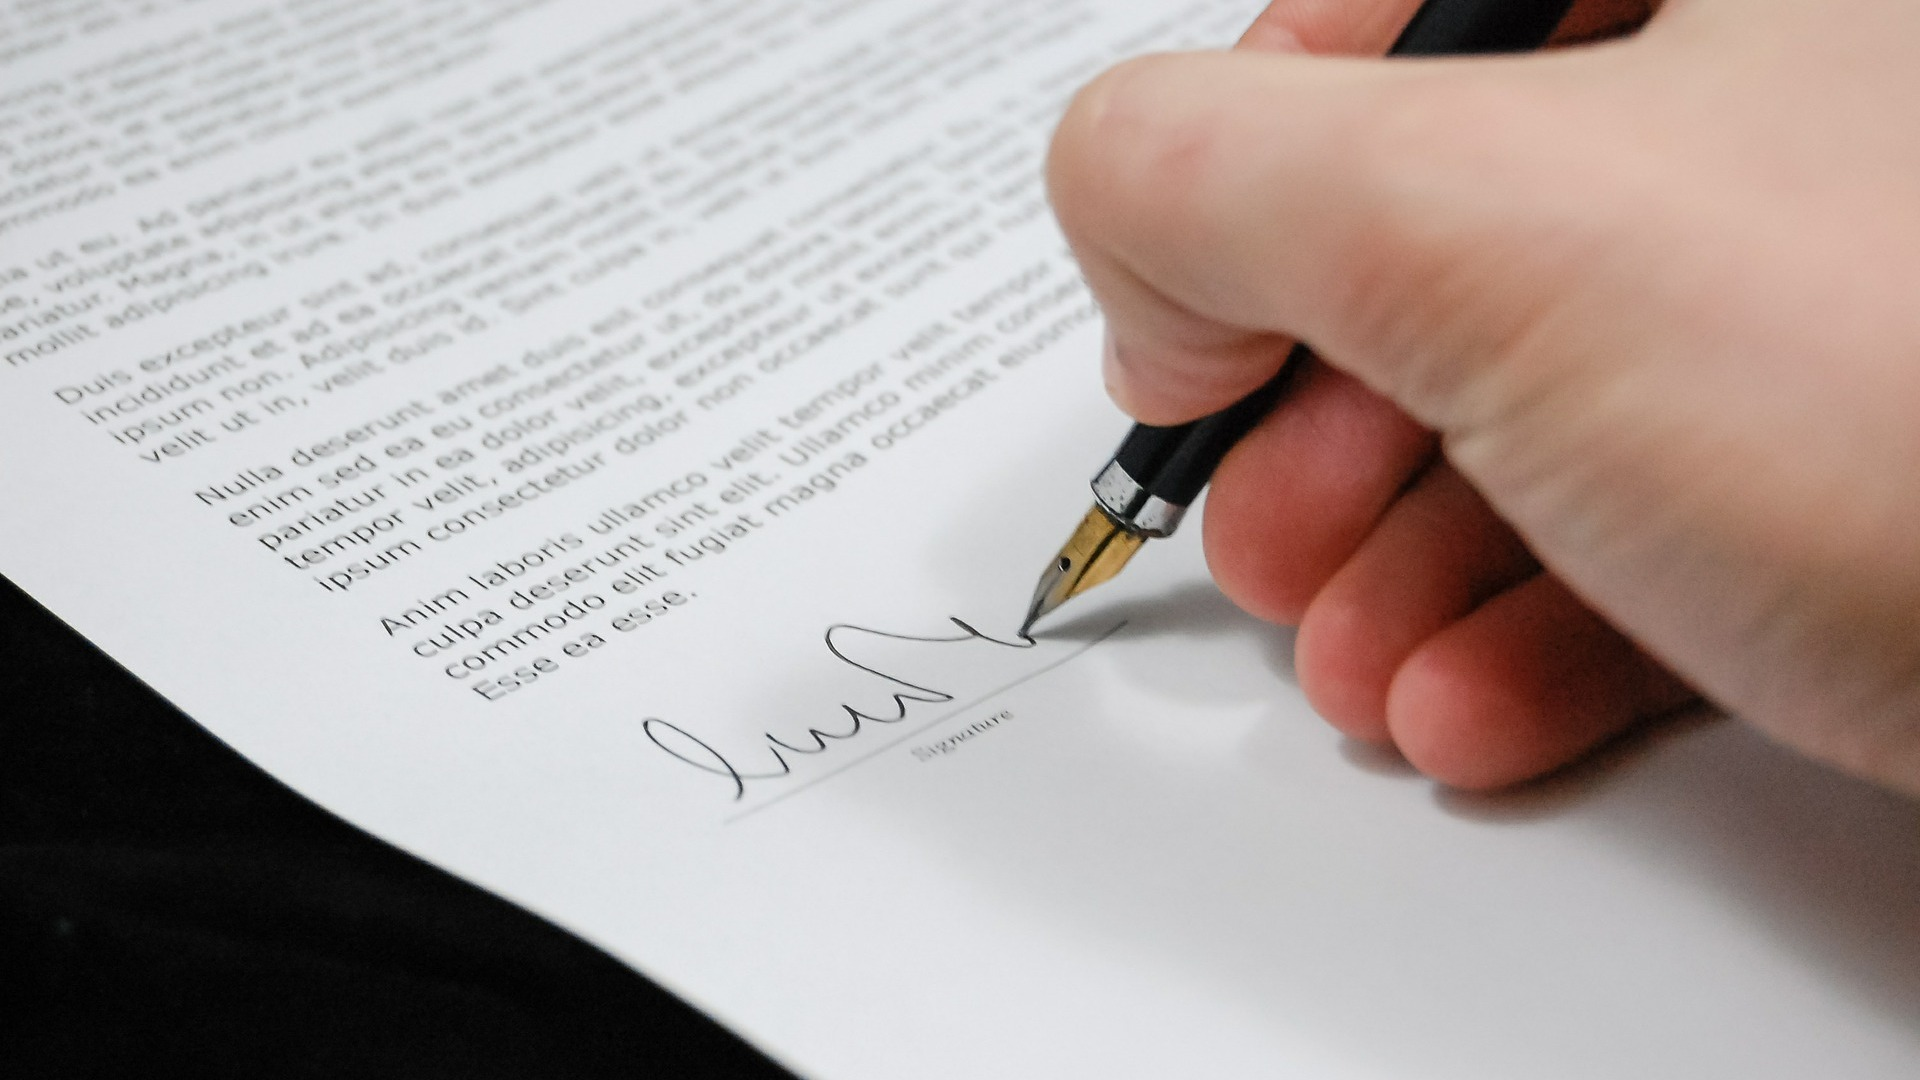 Hand signing paper